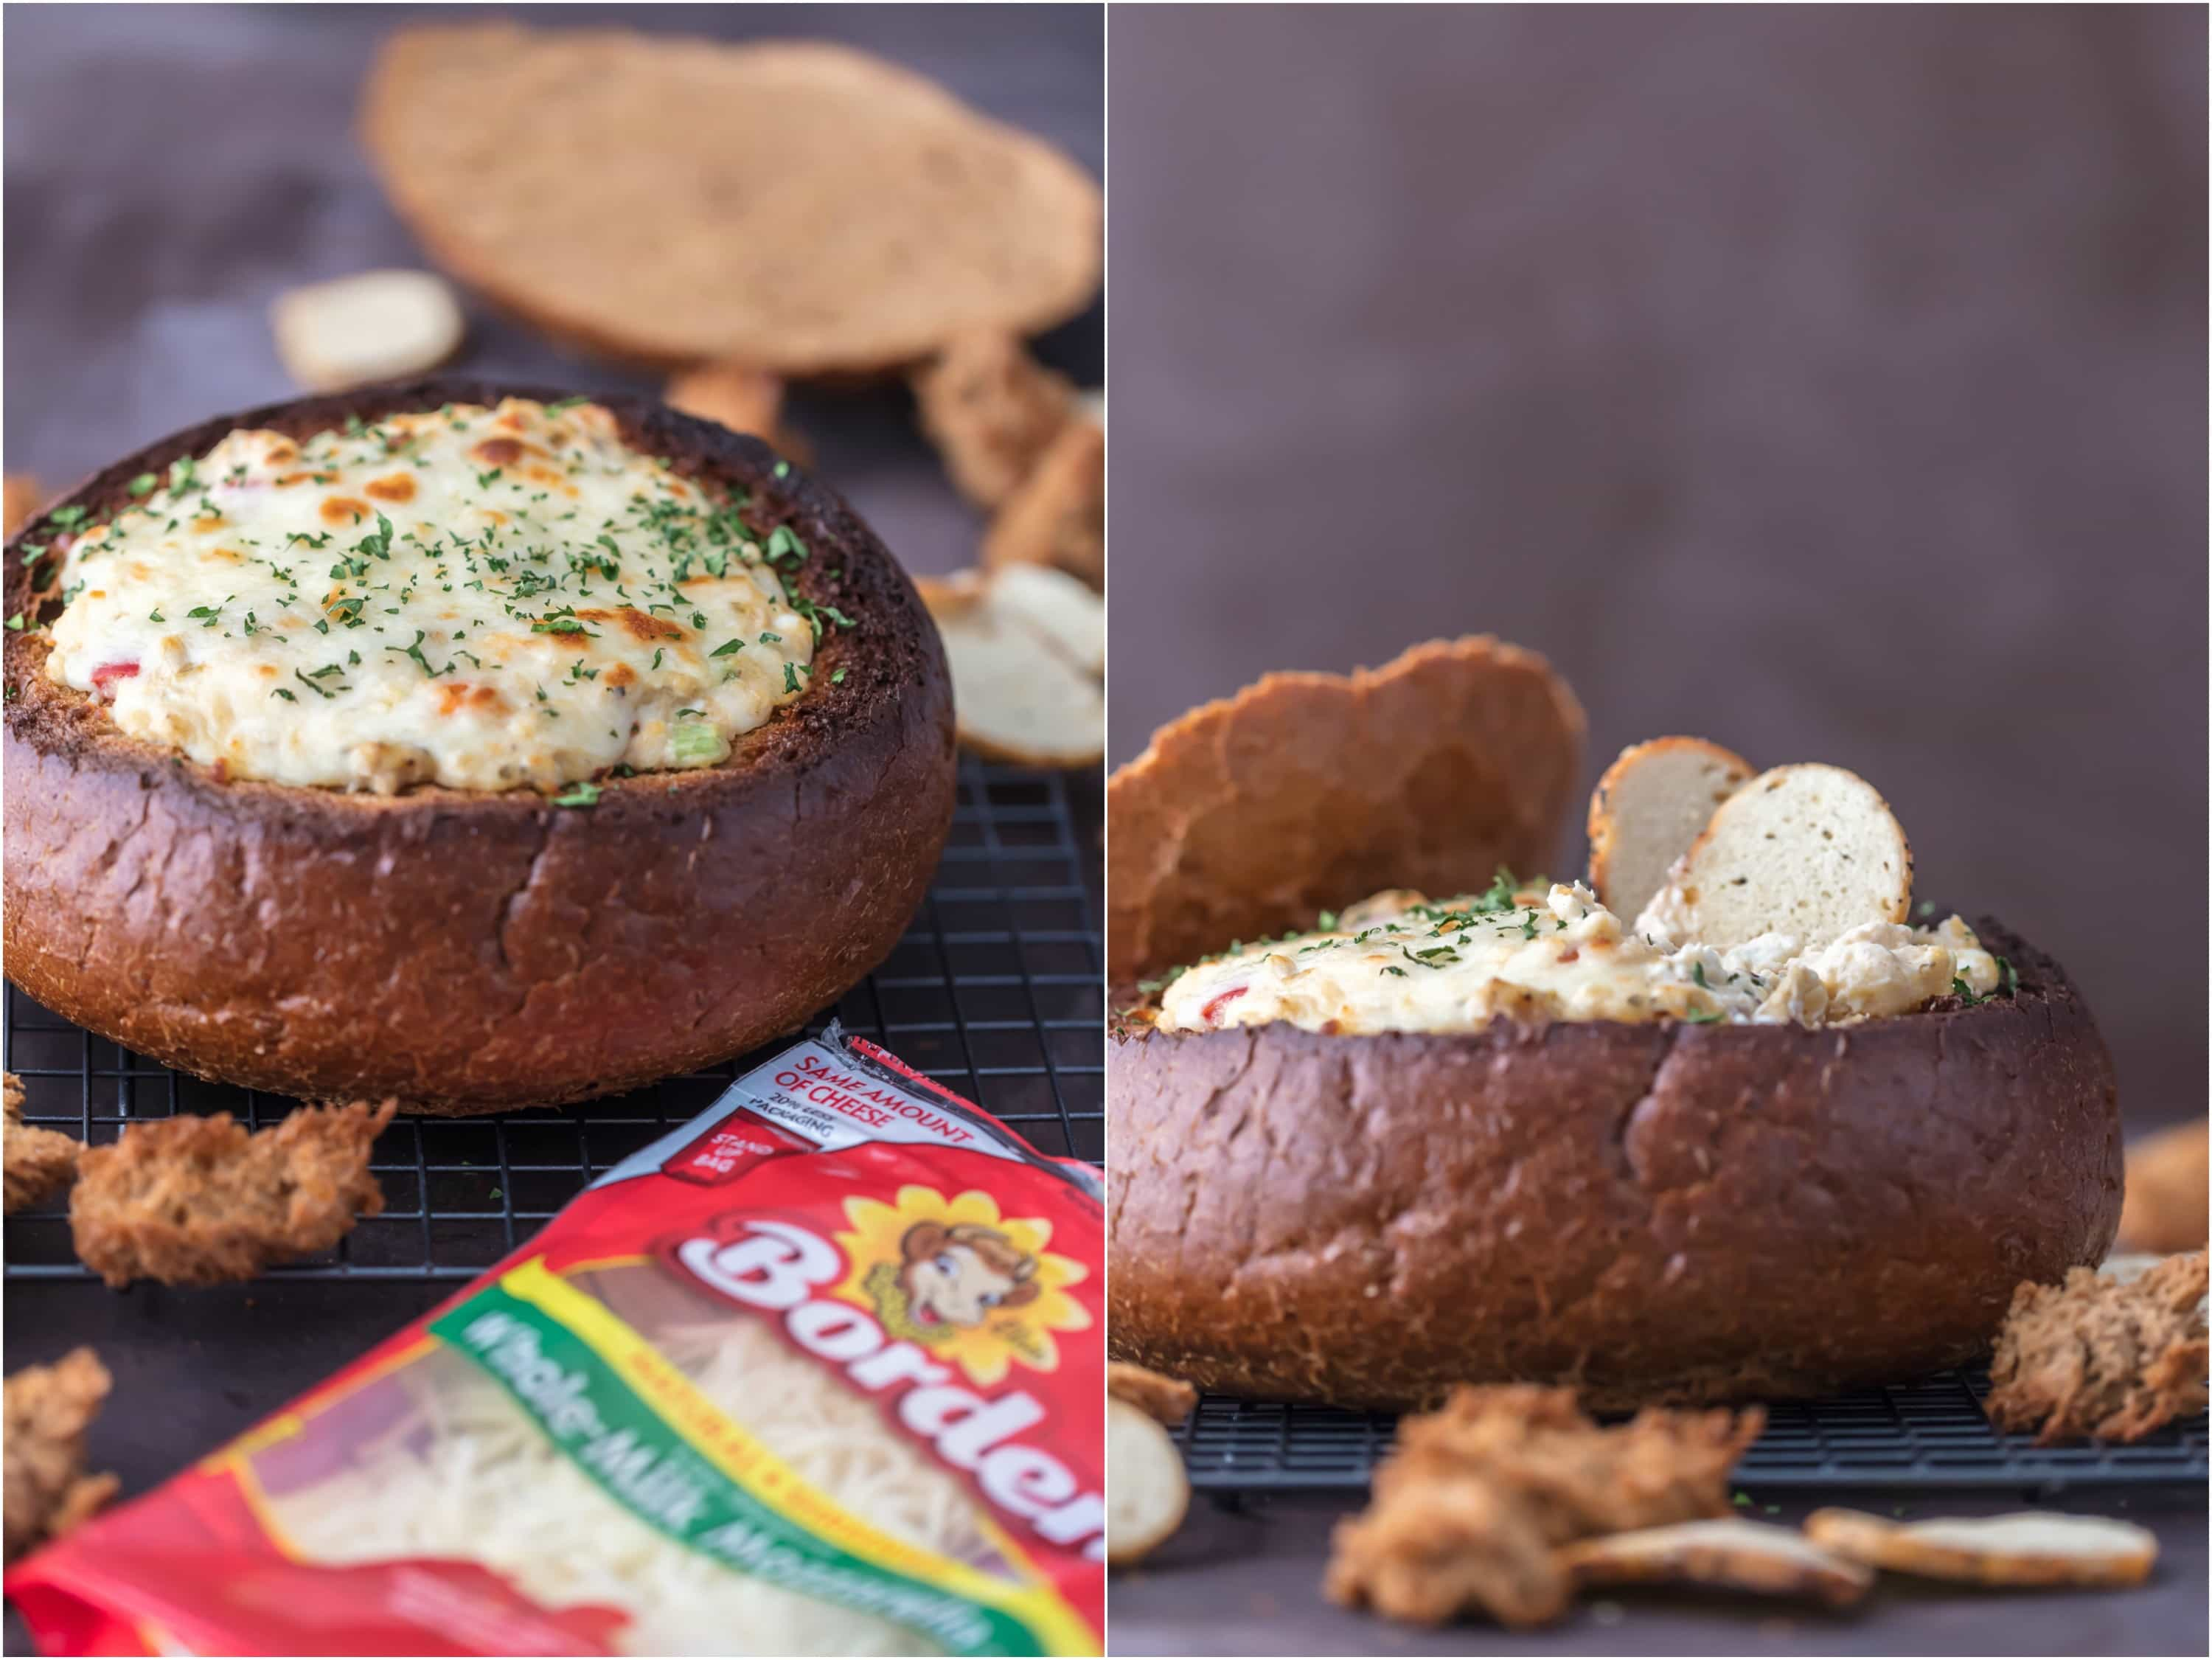 WARM CRAB ARTICHOKE DIP IN A BREAD BOWL is the perfect EASY appetizer for tailgating or celebrating with friends. The Super Bowl won't be the same without this simple, classy, and cheesy dip!